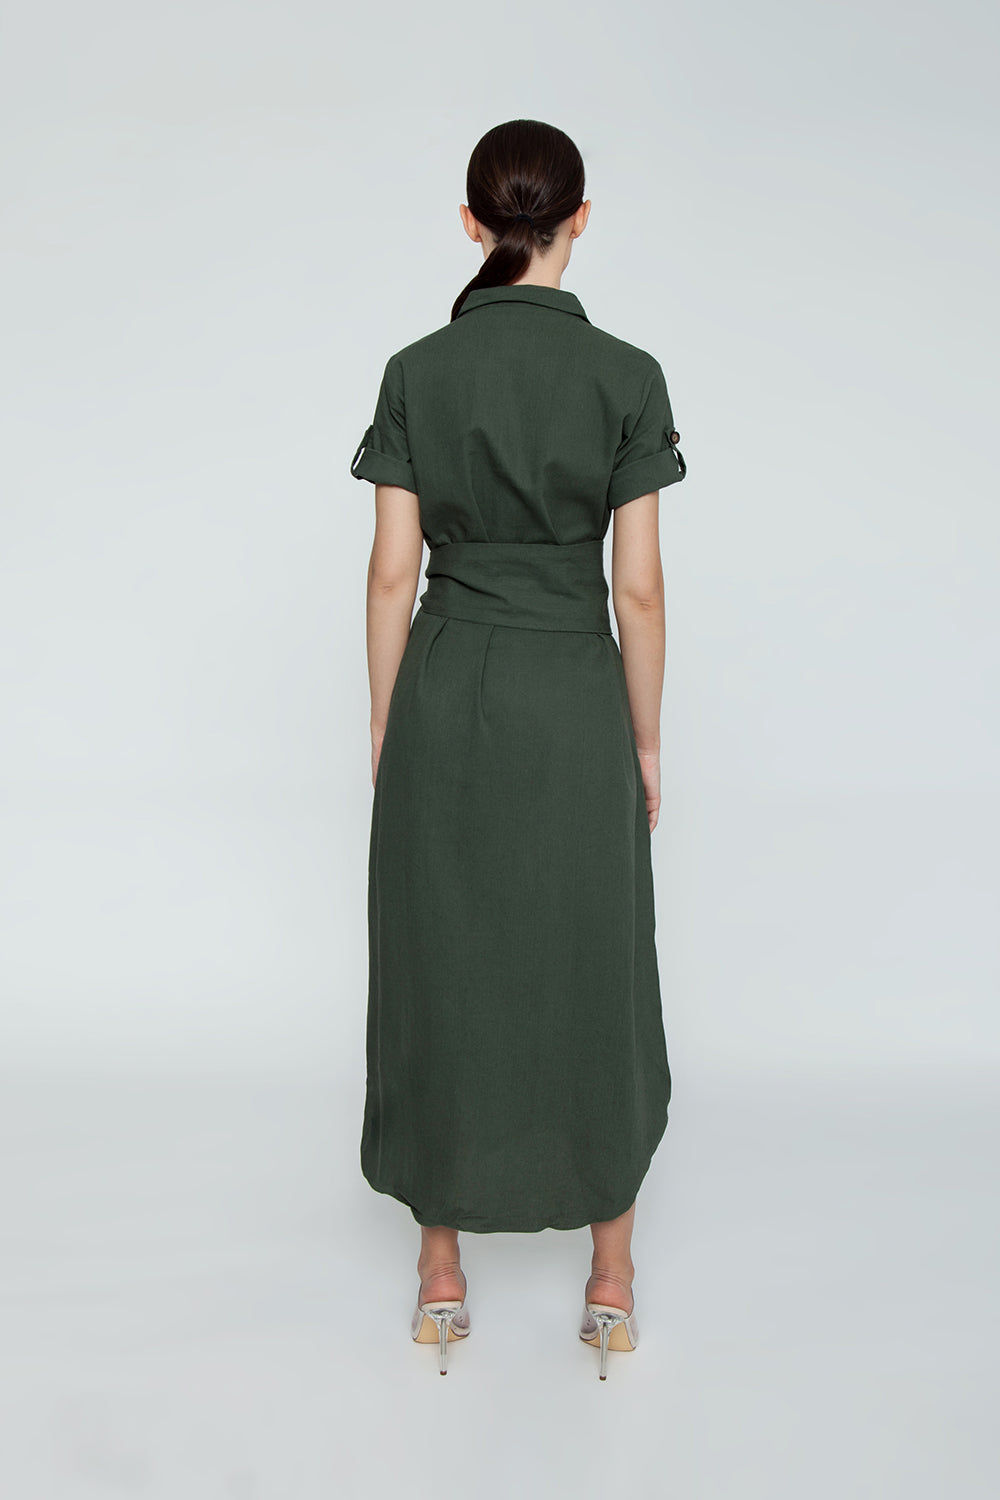 TRIYA Button Up Collared Maxi Dress - Military Green Dress | Military Green| Triya Button Up Dress - Military Green Collared maxi dress Short sleeves Button up front closure Back View